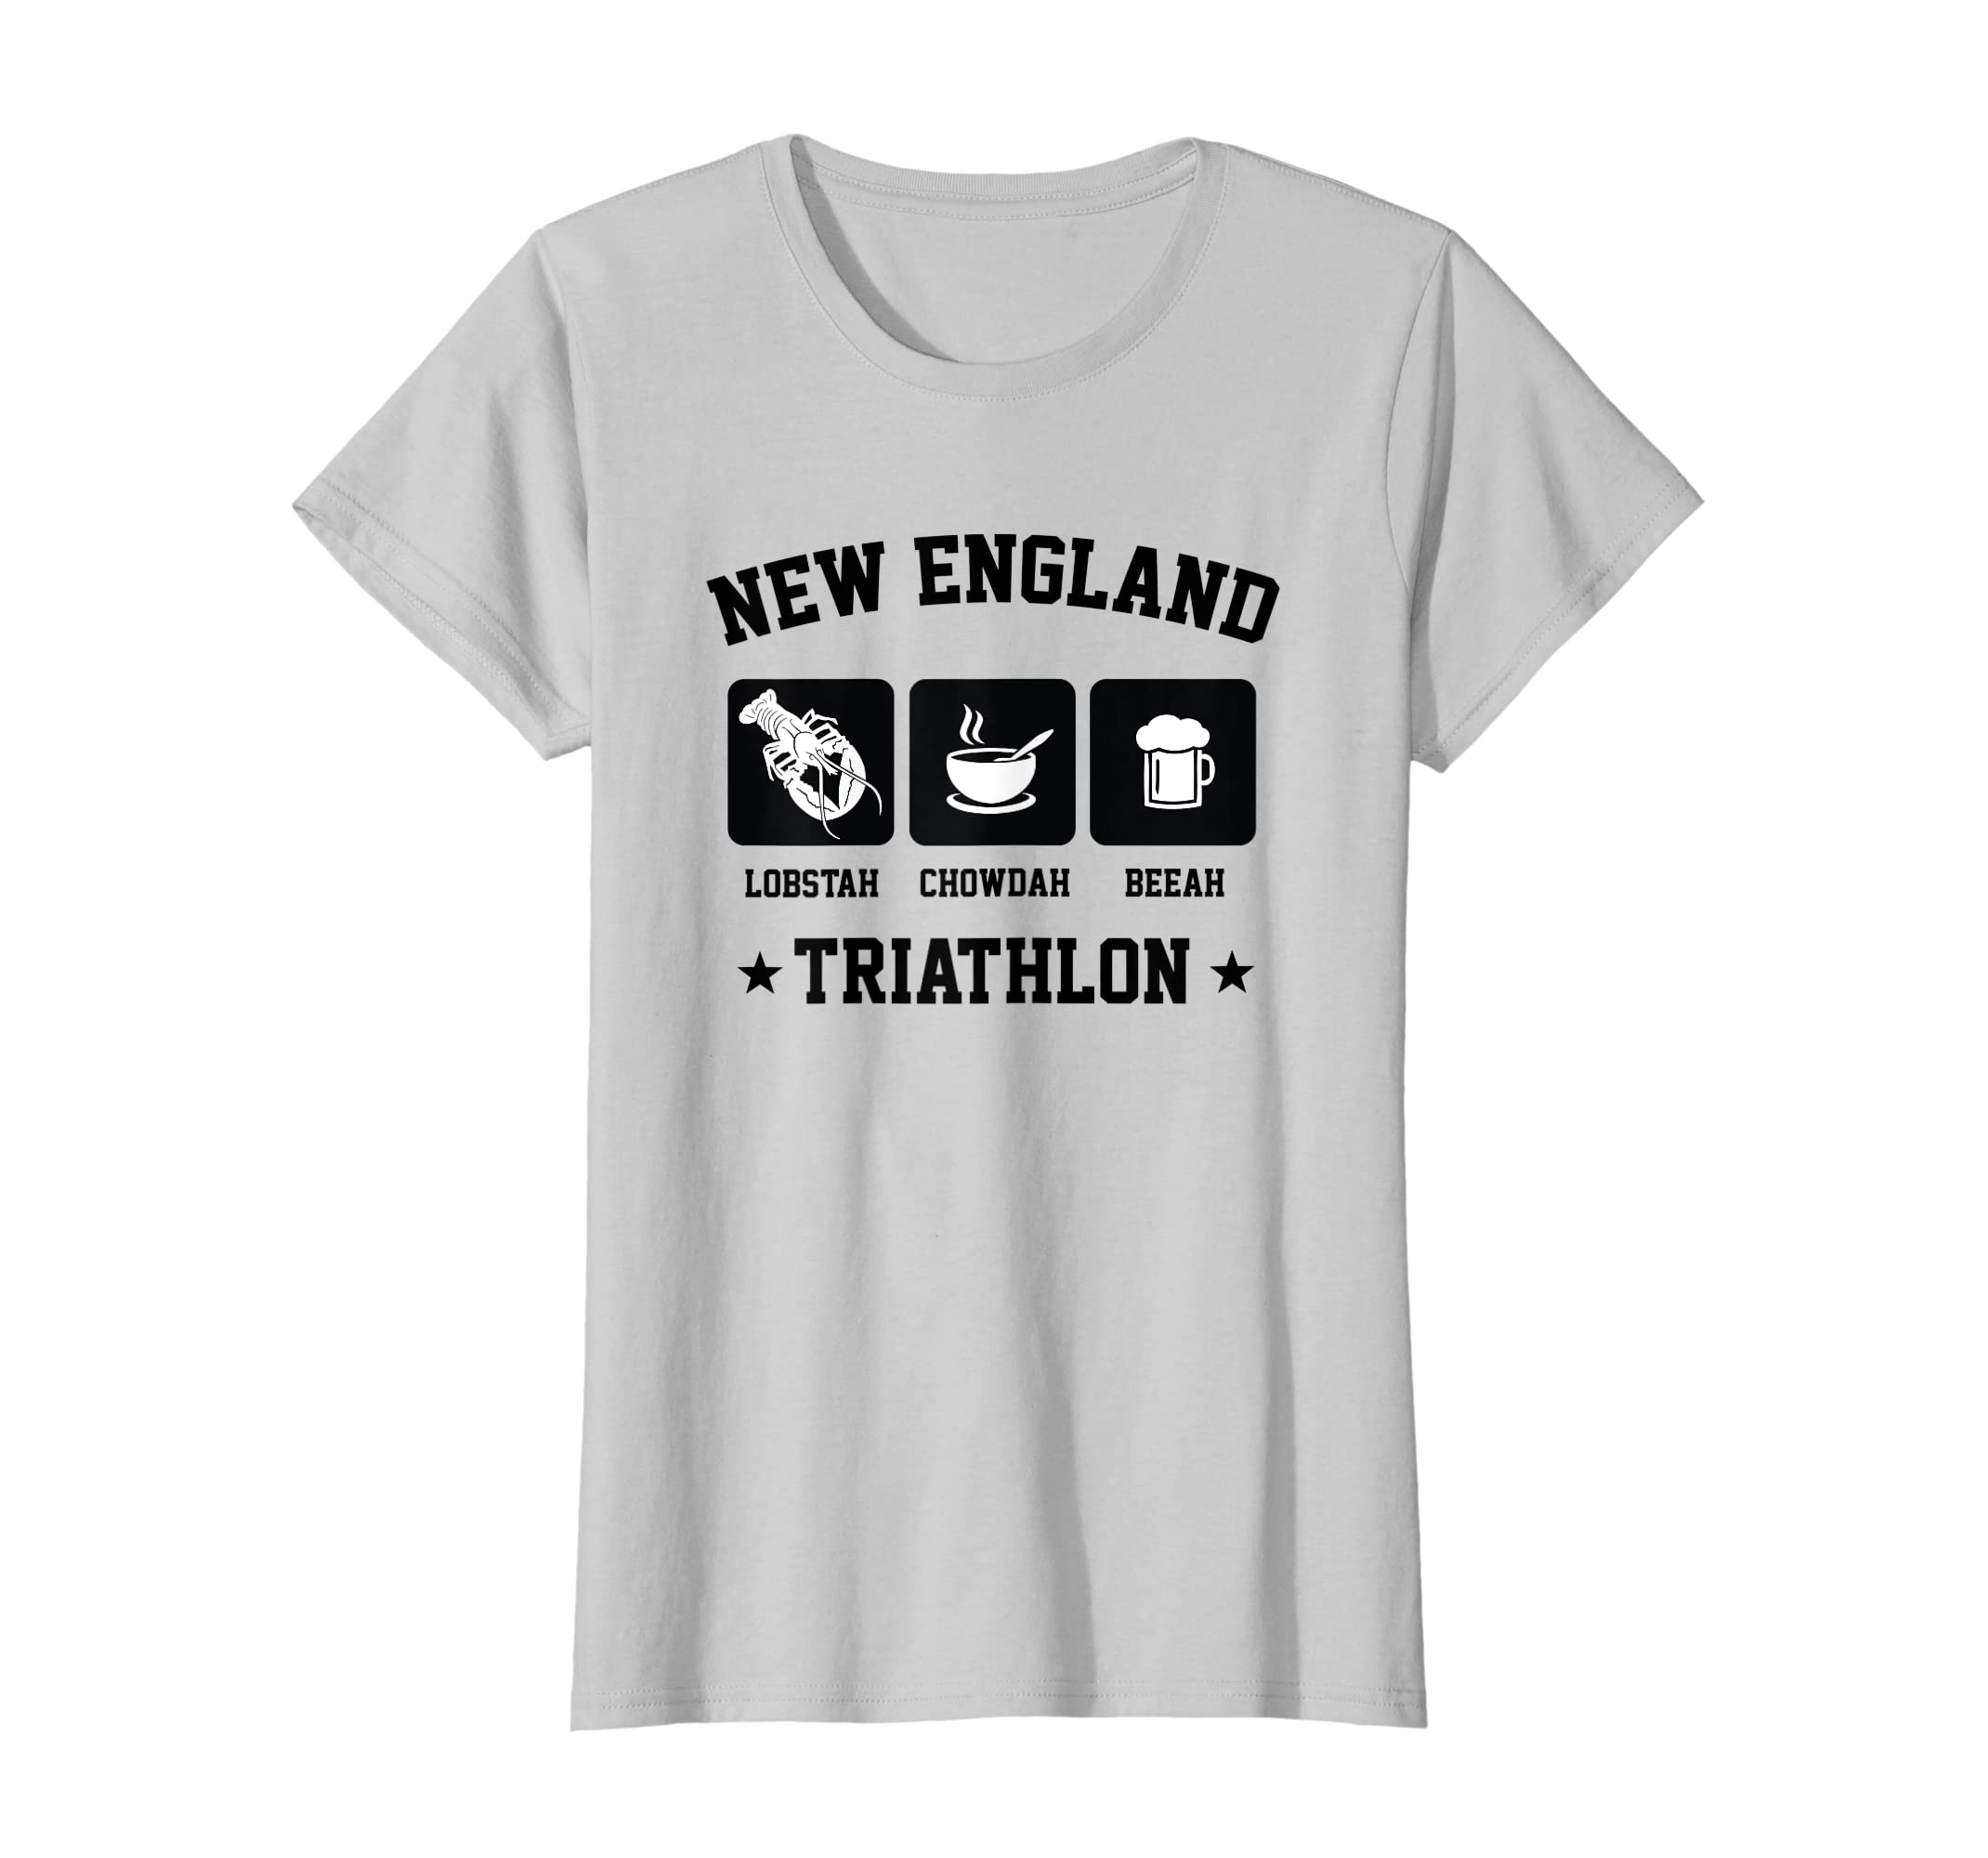 d92df165f Amazon.com: New England Triathlon Lobster Clam Chowder and Beer t-shirt:  Clothing